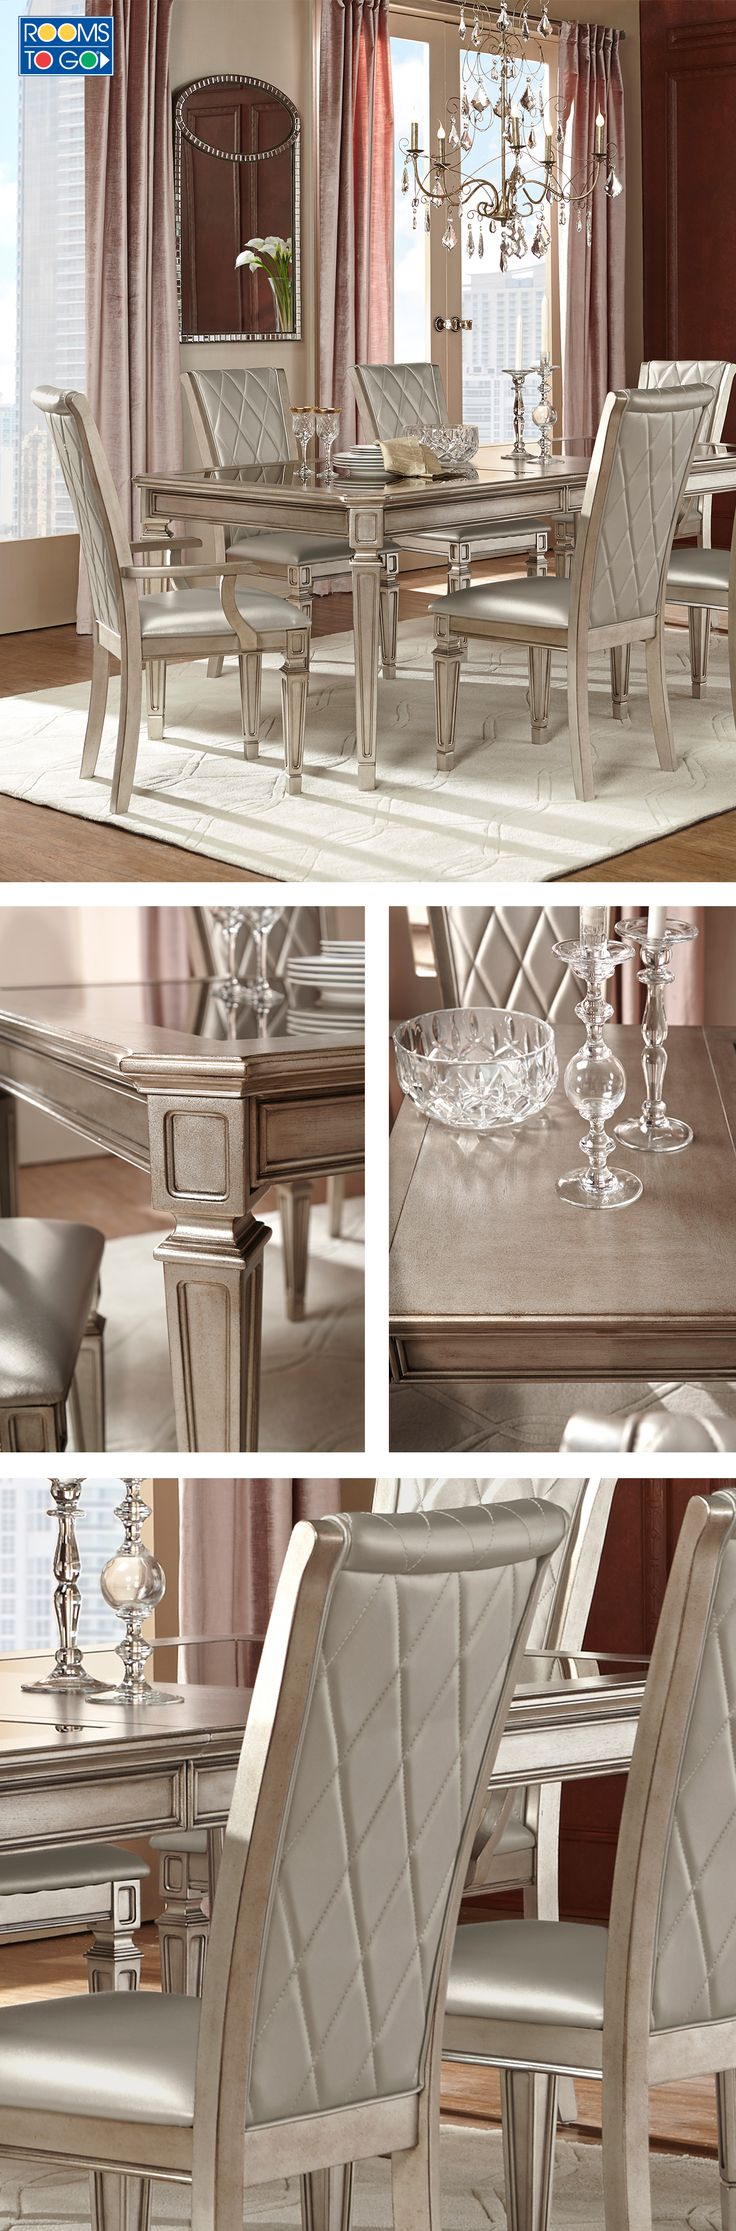 Why simply eat when you can dine? The Belle Terra dining collection's chic, elegant design transforms each meal into a culinary experience.